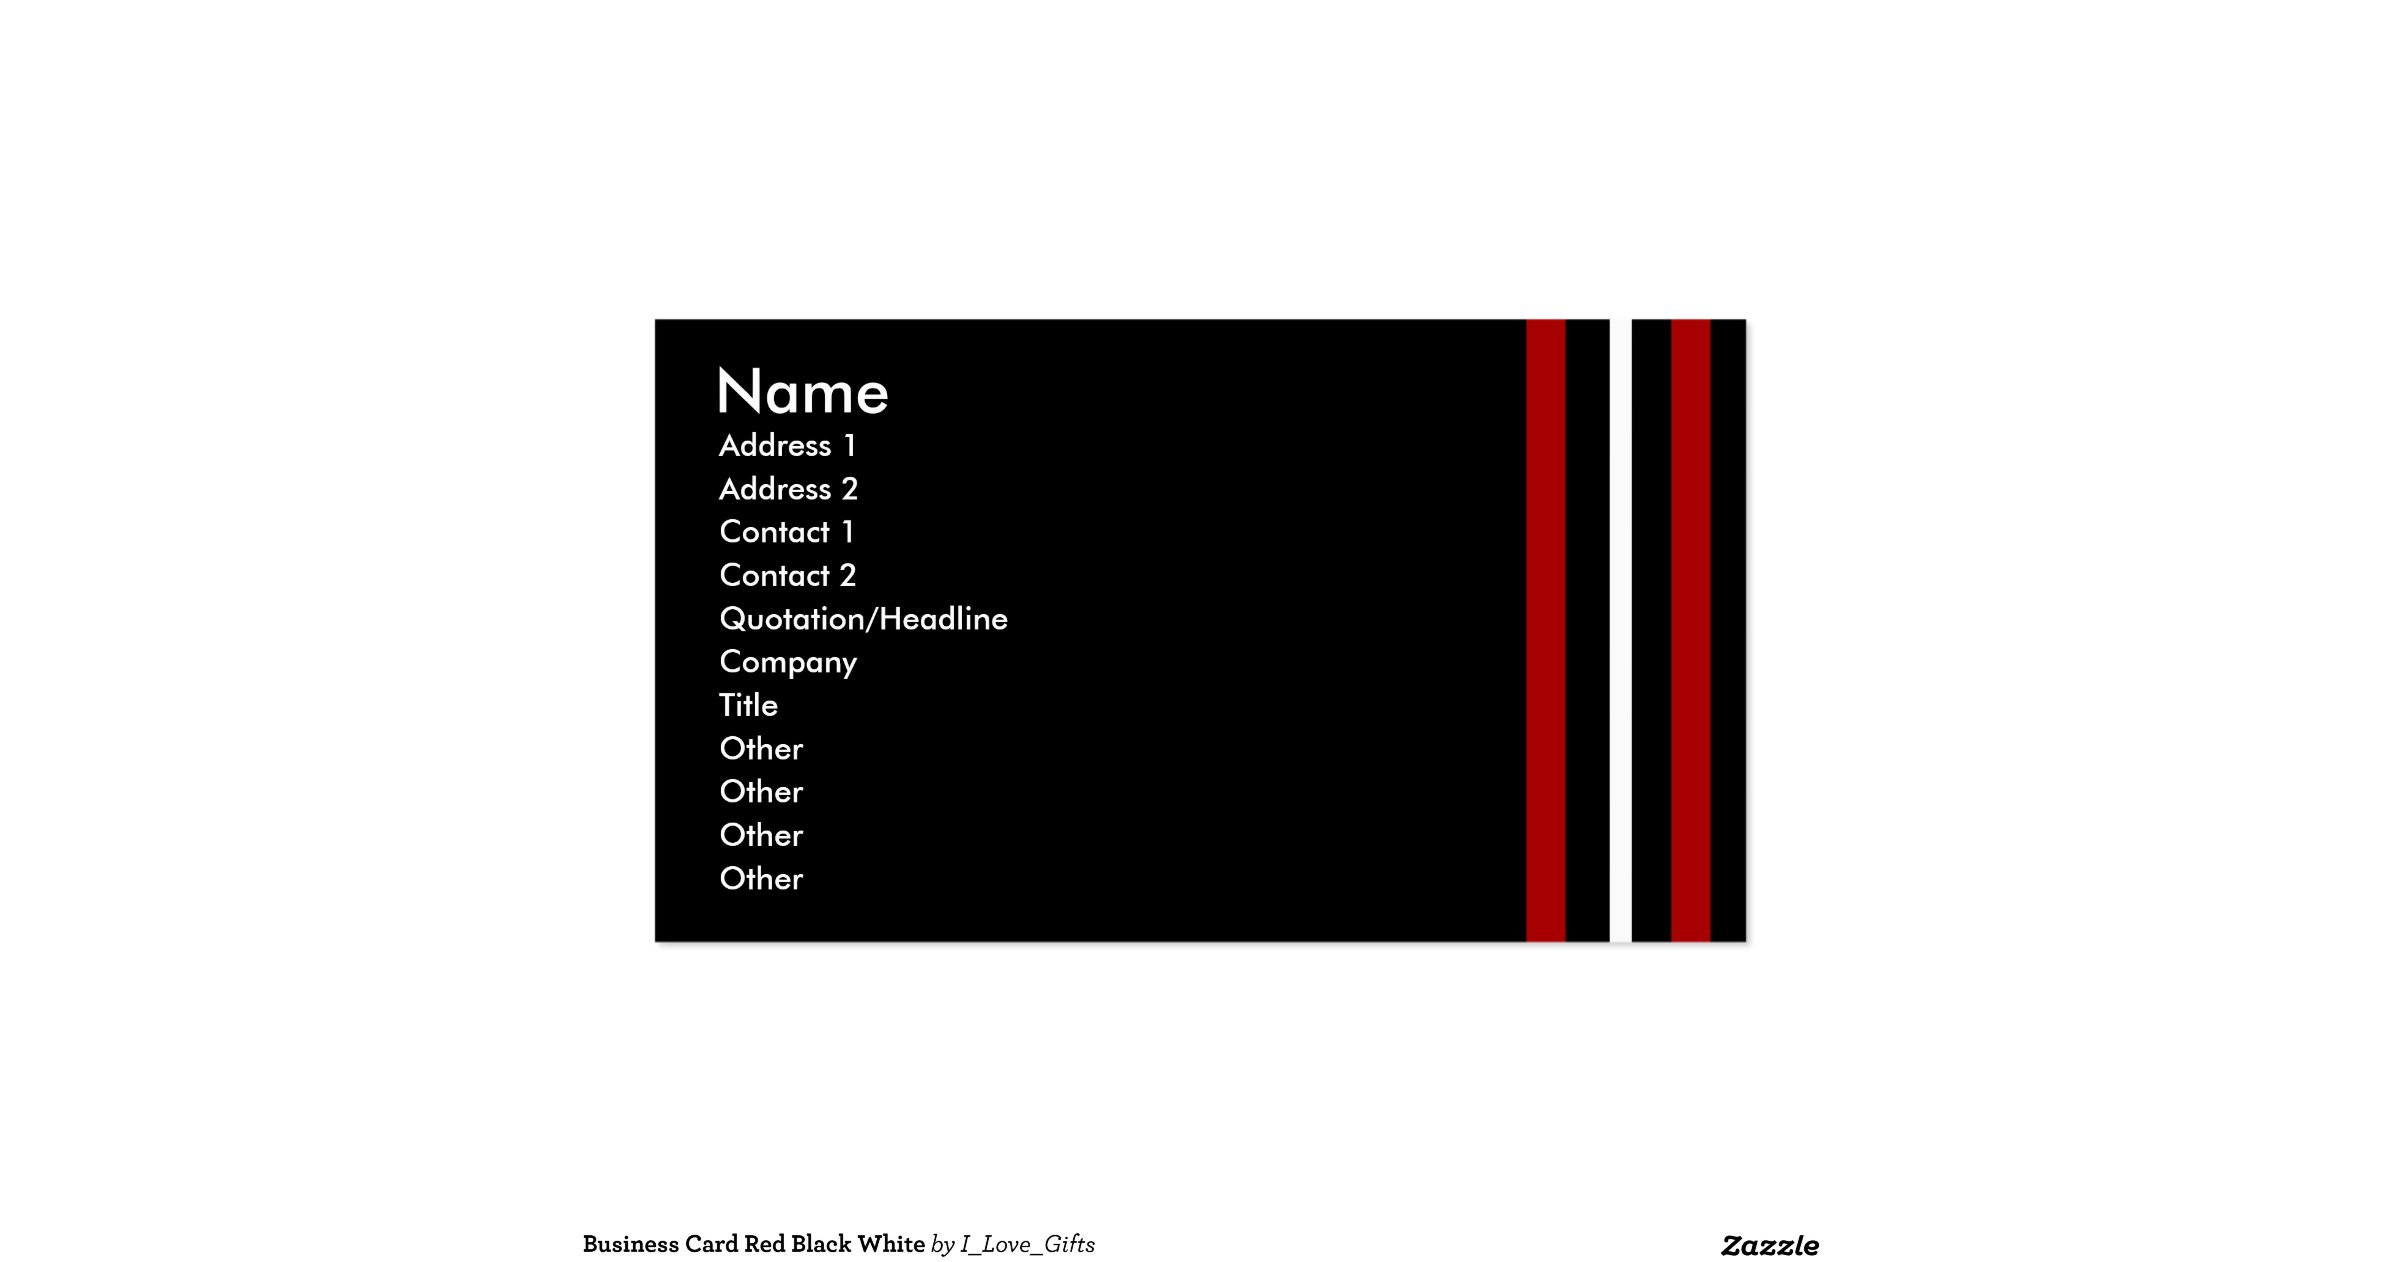 Create Your Own Business Card Red Black White